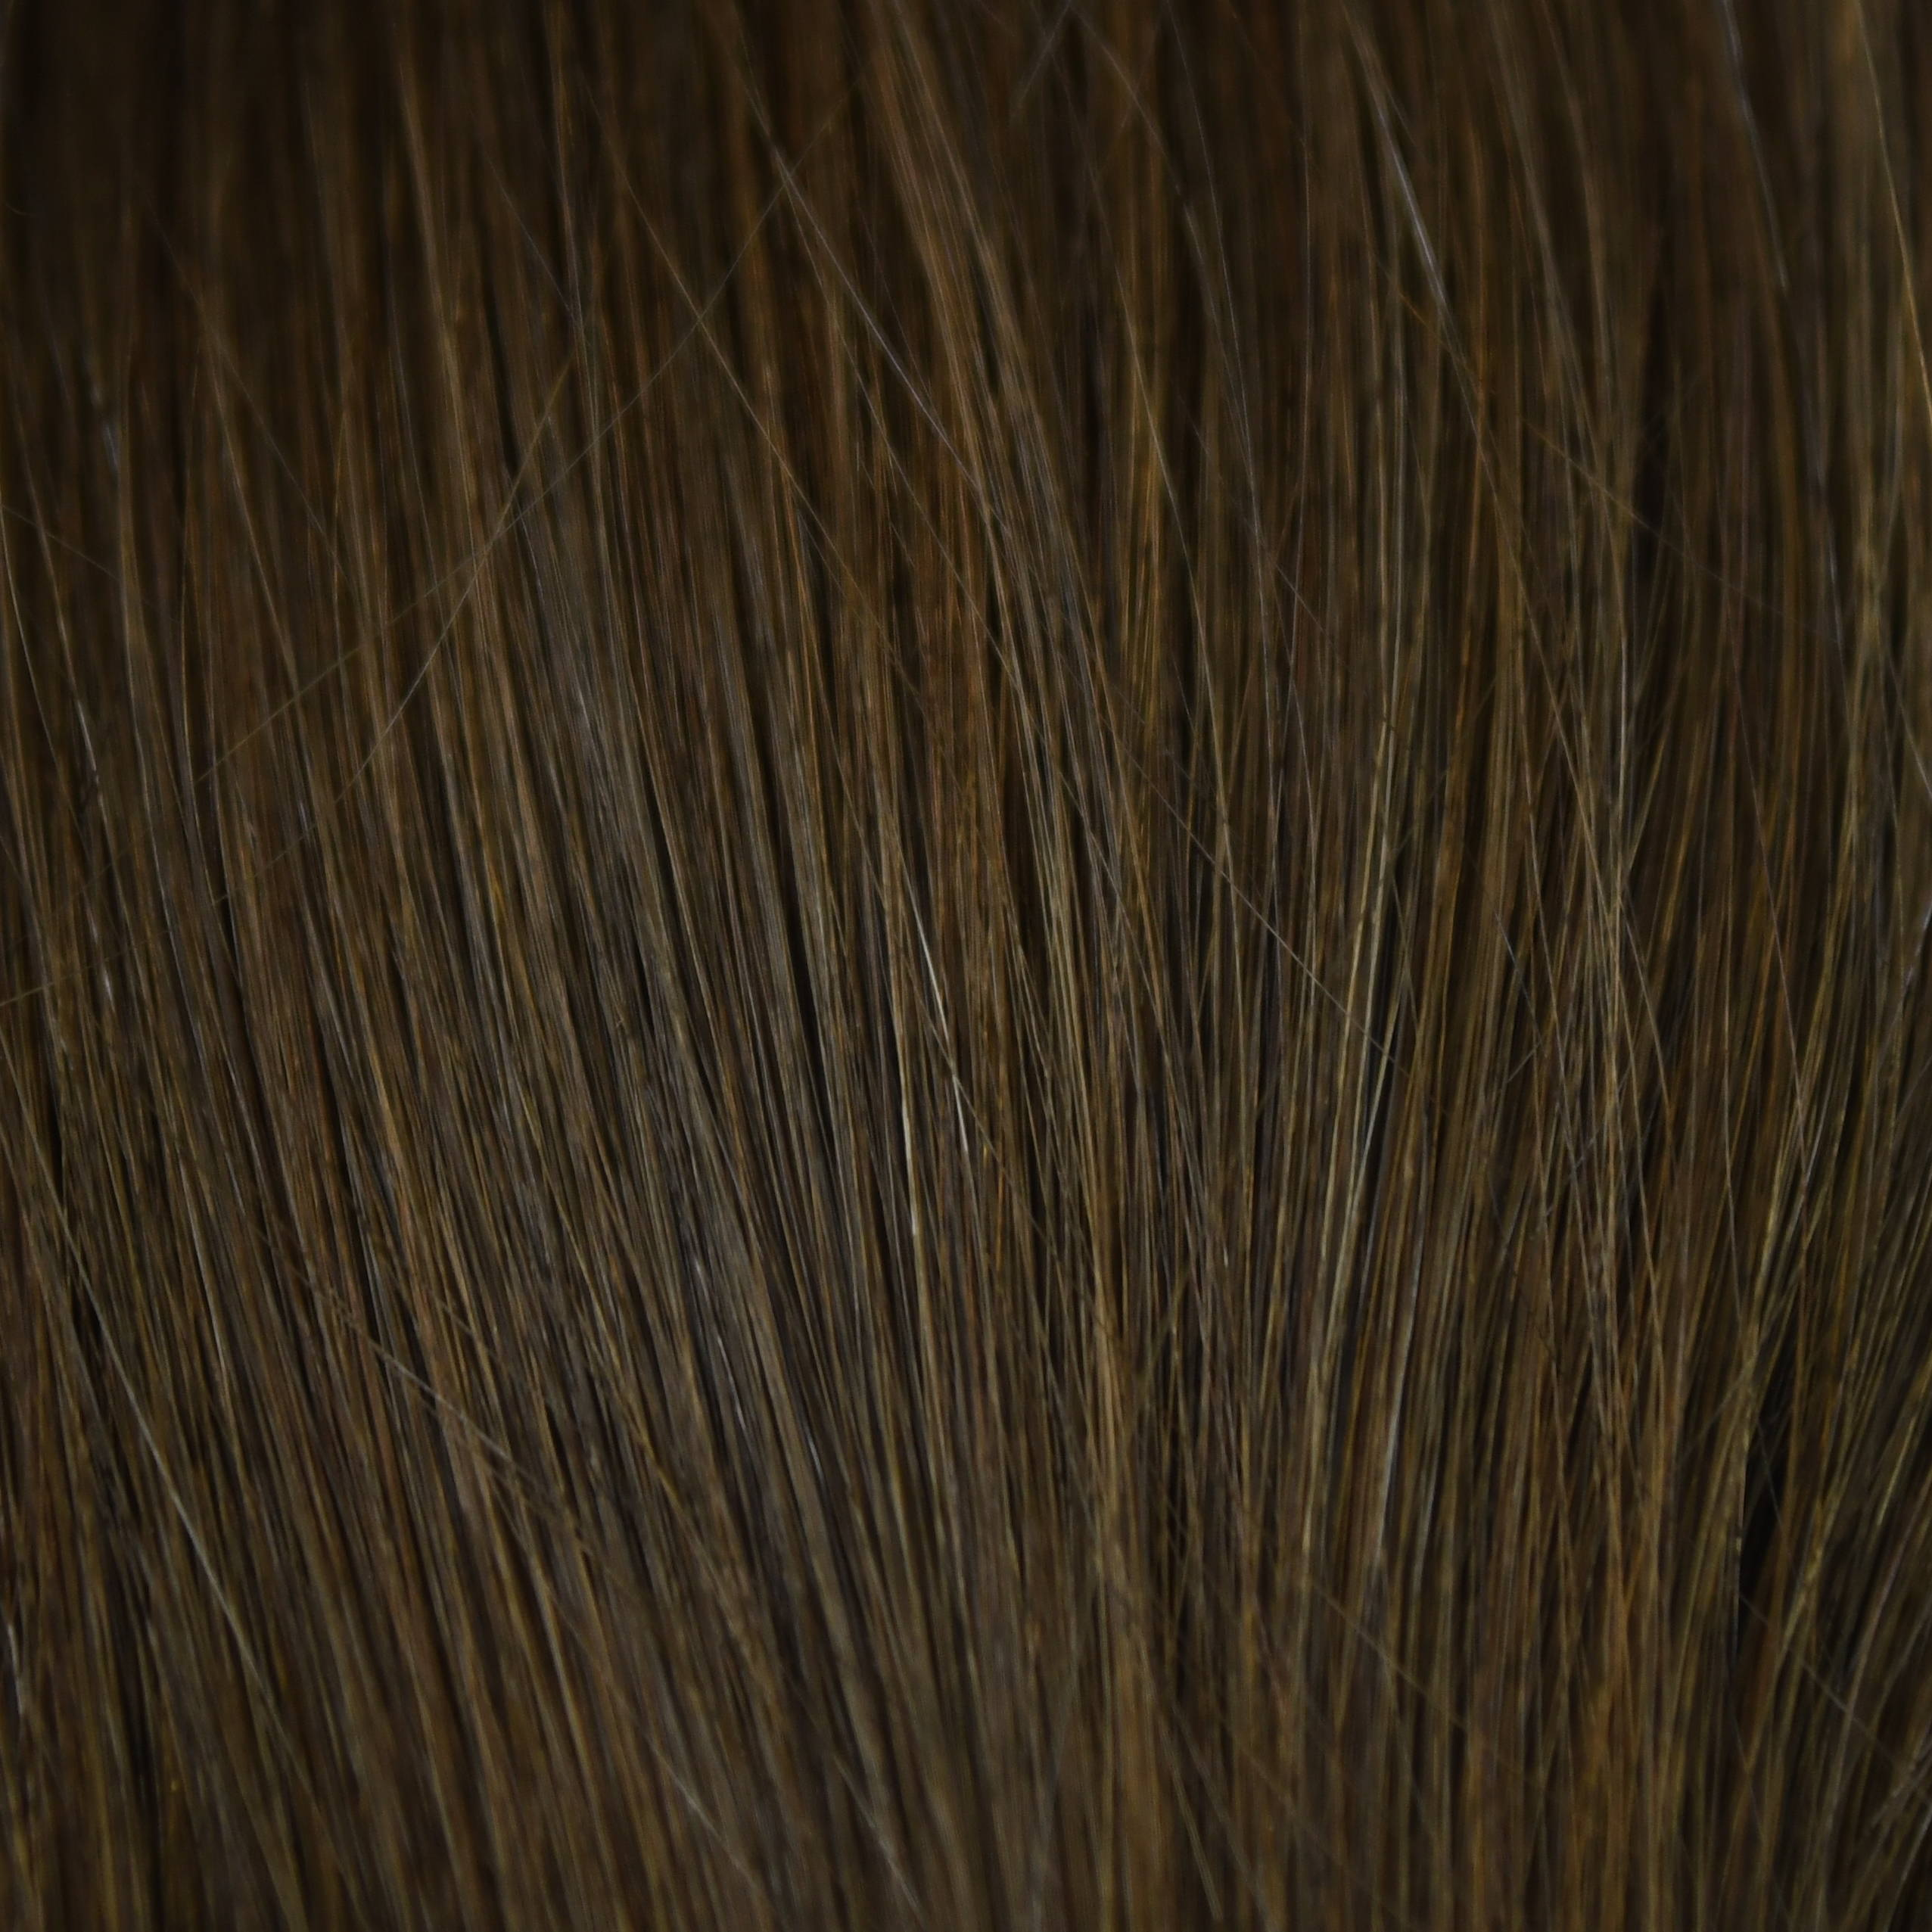 honey brown color hair help to choose hair extensions color in hair color chart